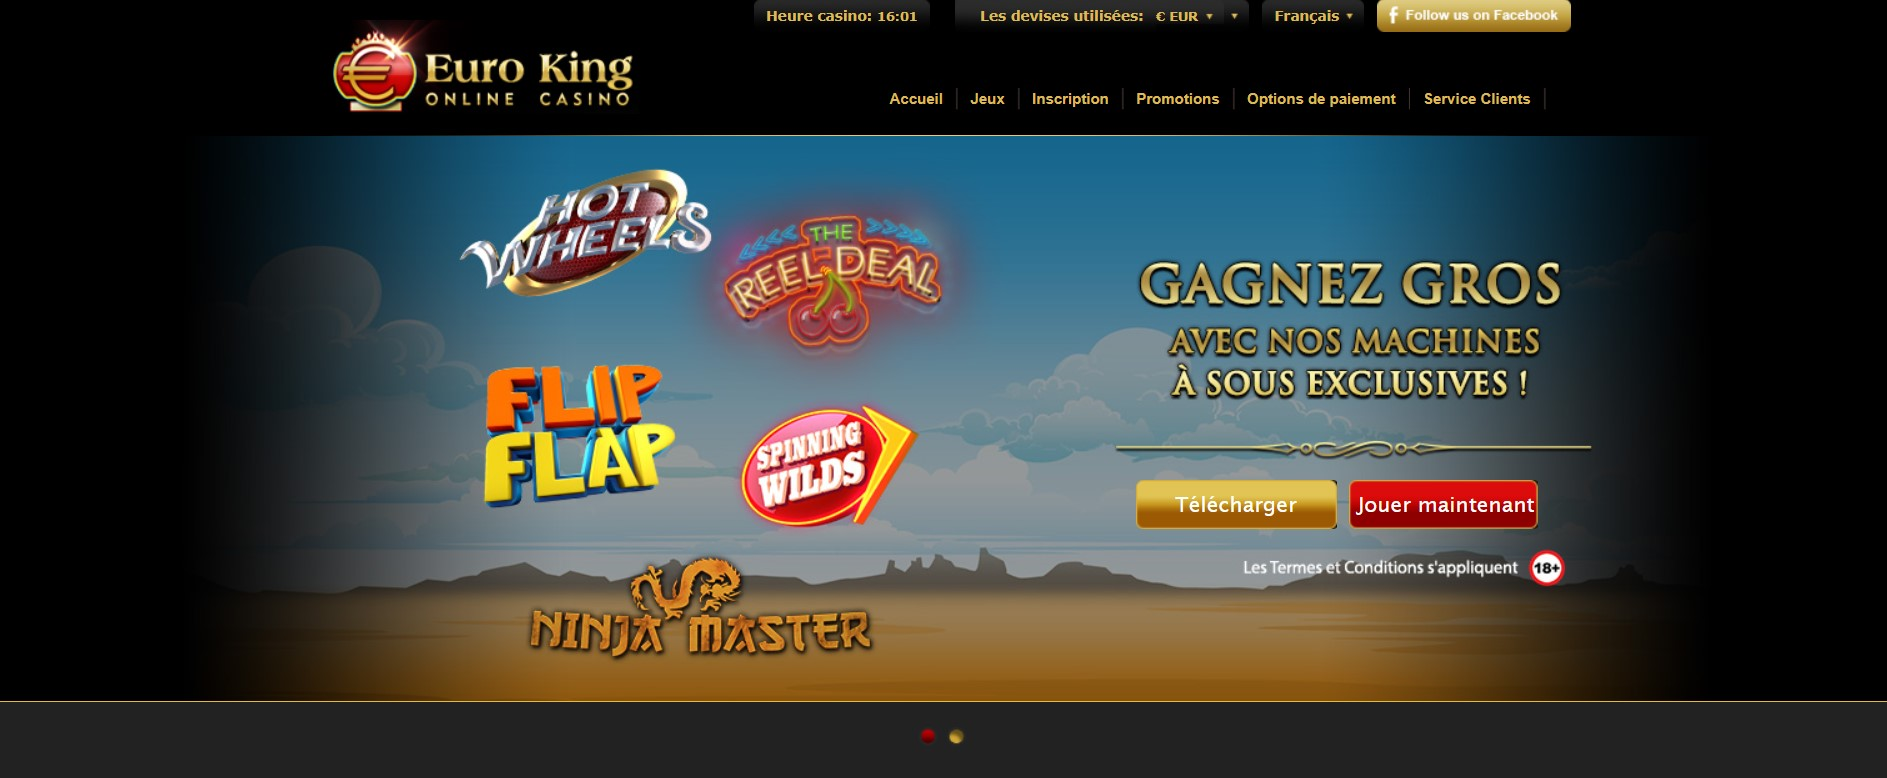 Euro King casino VS Euromoon casino avis : notre comparatif !